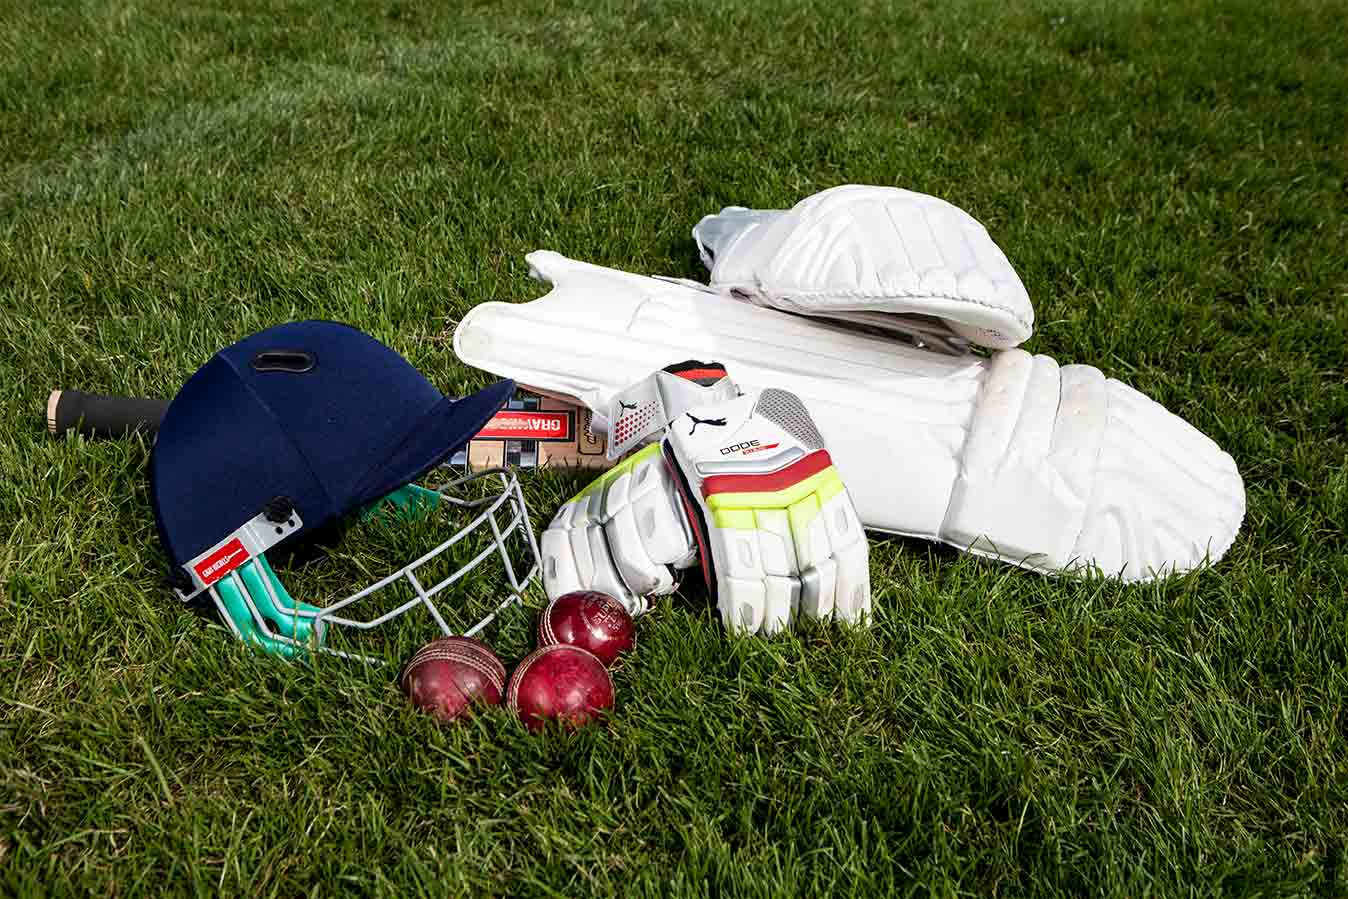 sunday cricket About us the somerset county sports sponsored sunday cricket league is based in taunton, somerset with member clubs located approx 30 miles from taunton.